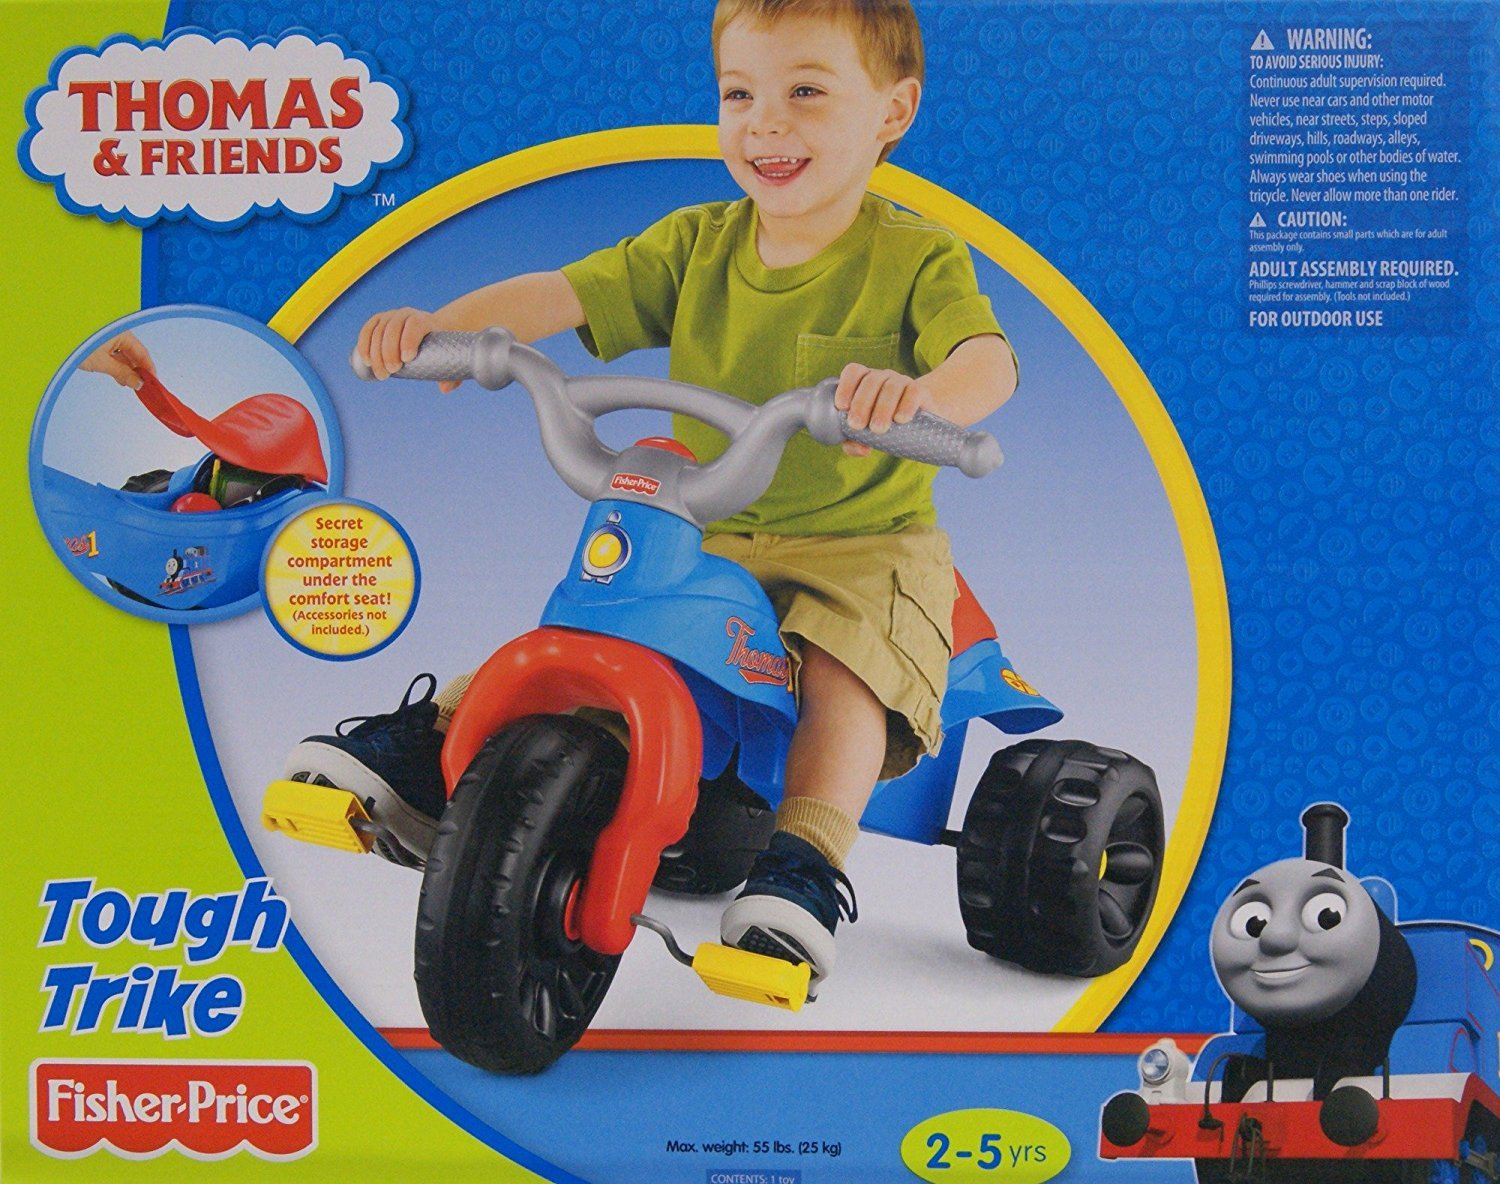 Fisher Price Kids Thomas The Tank Engine Tough Trike Pedal and Push Toddler Tricycle for Boys with Wide Wheelbase by Fisher-Price